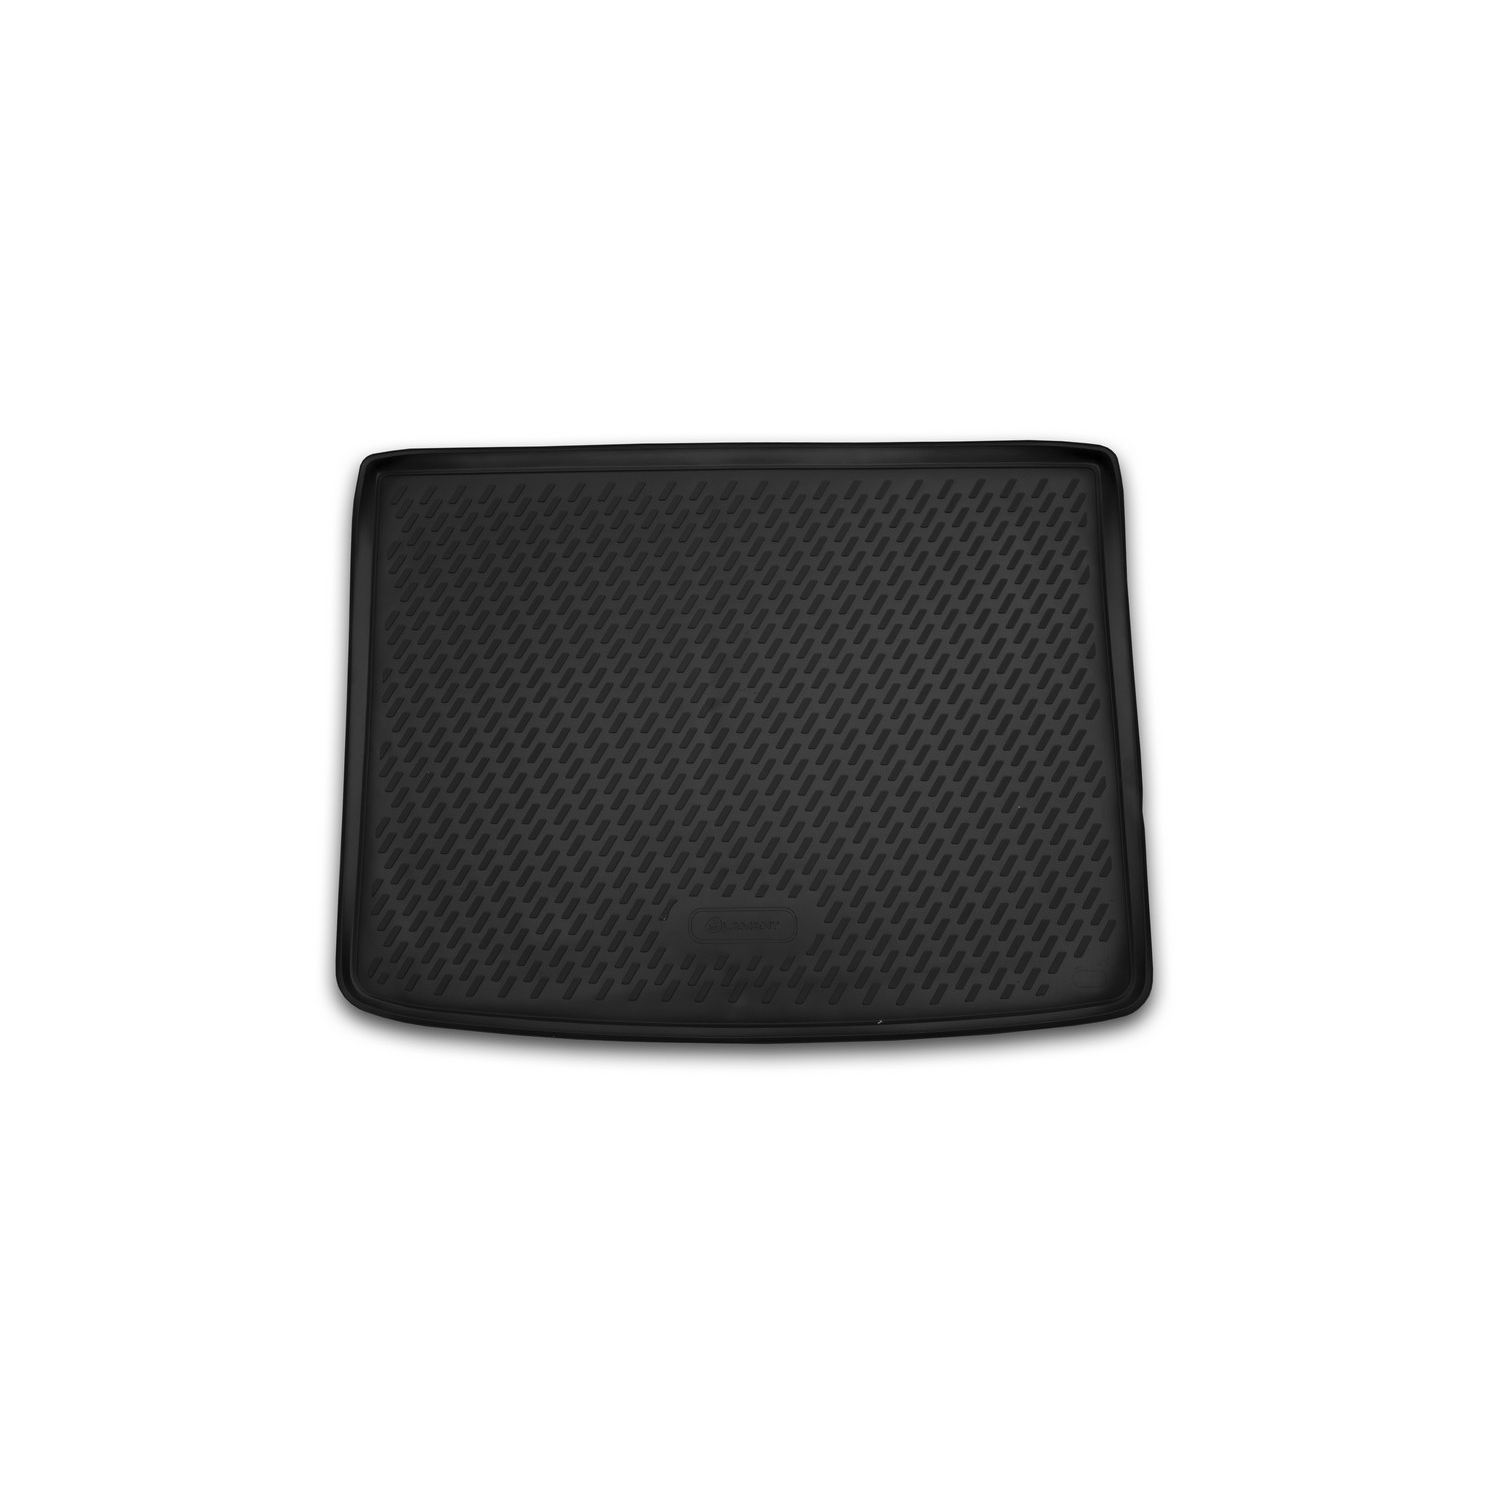 Trunk Mat For JEEP Renegade 2015, The Cross. 1 PCs CARJEP00012